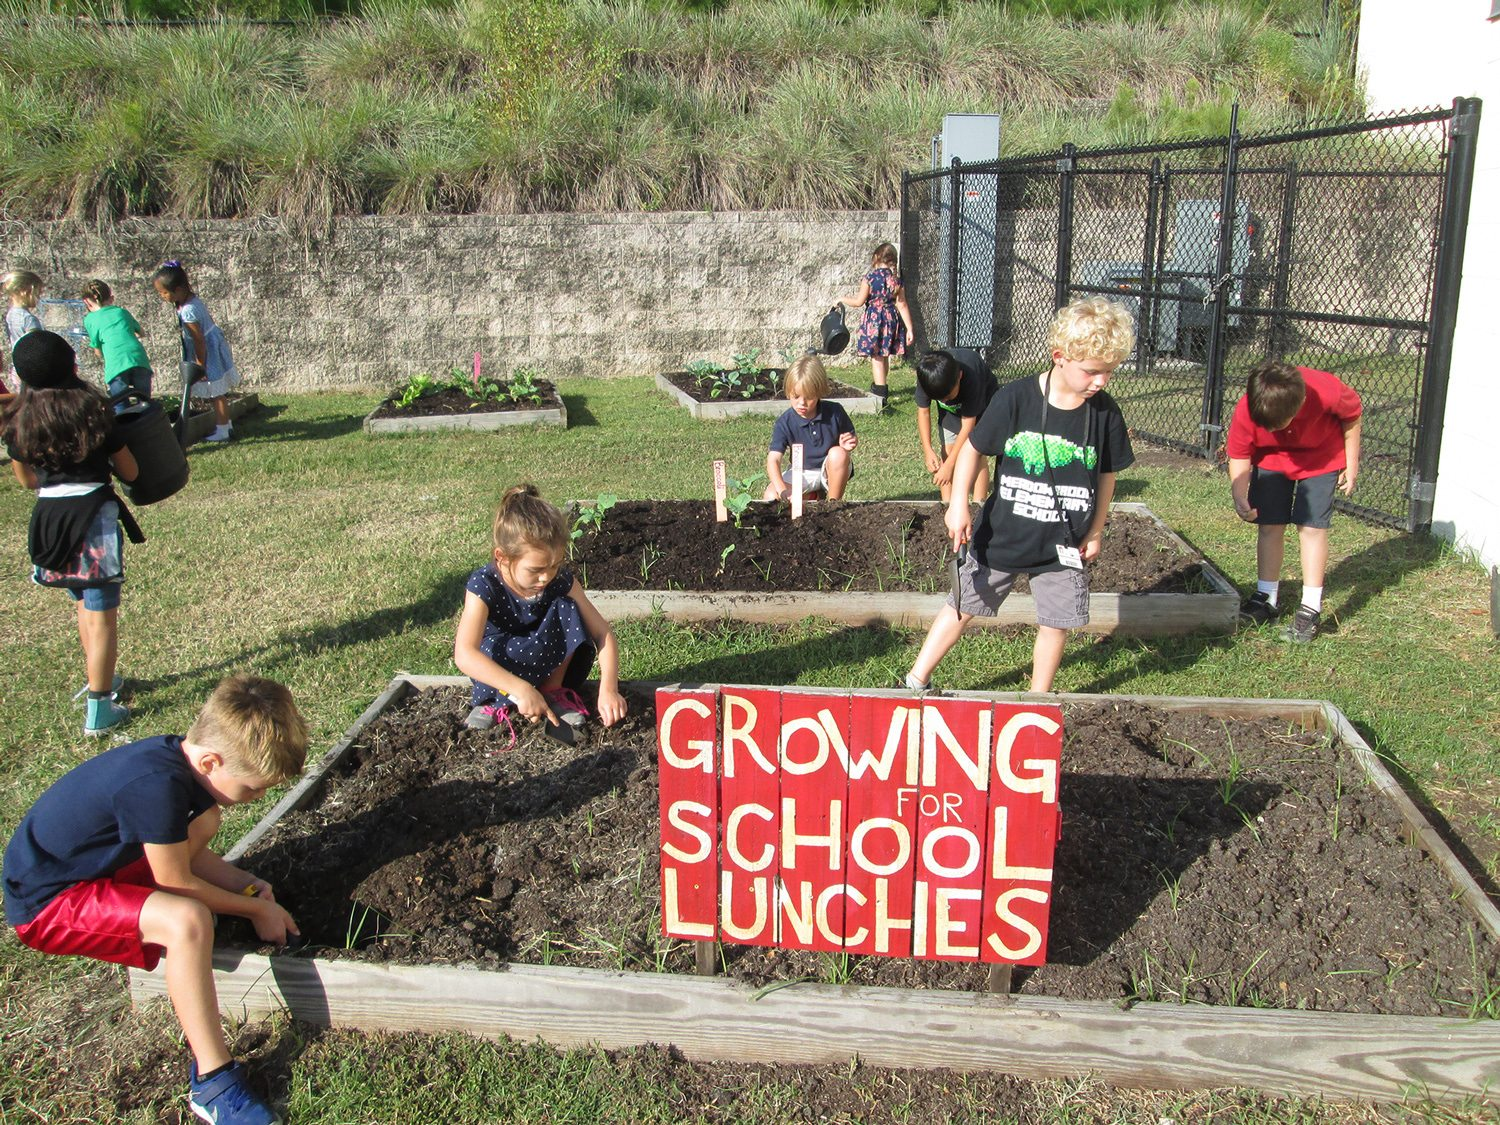 Students planting in their school garden